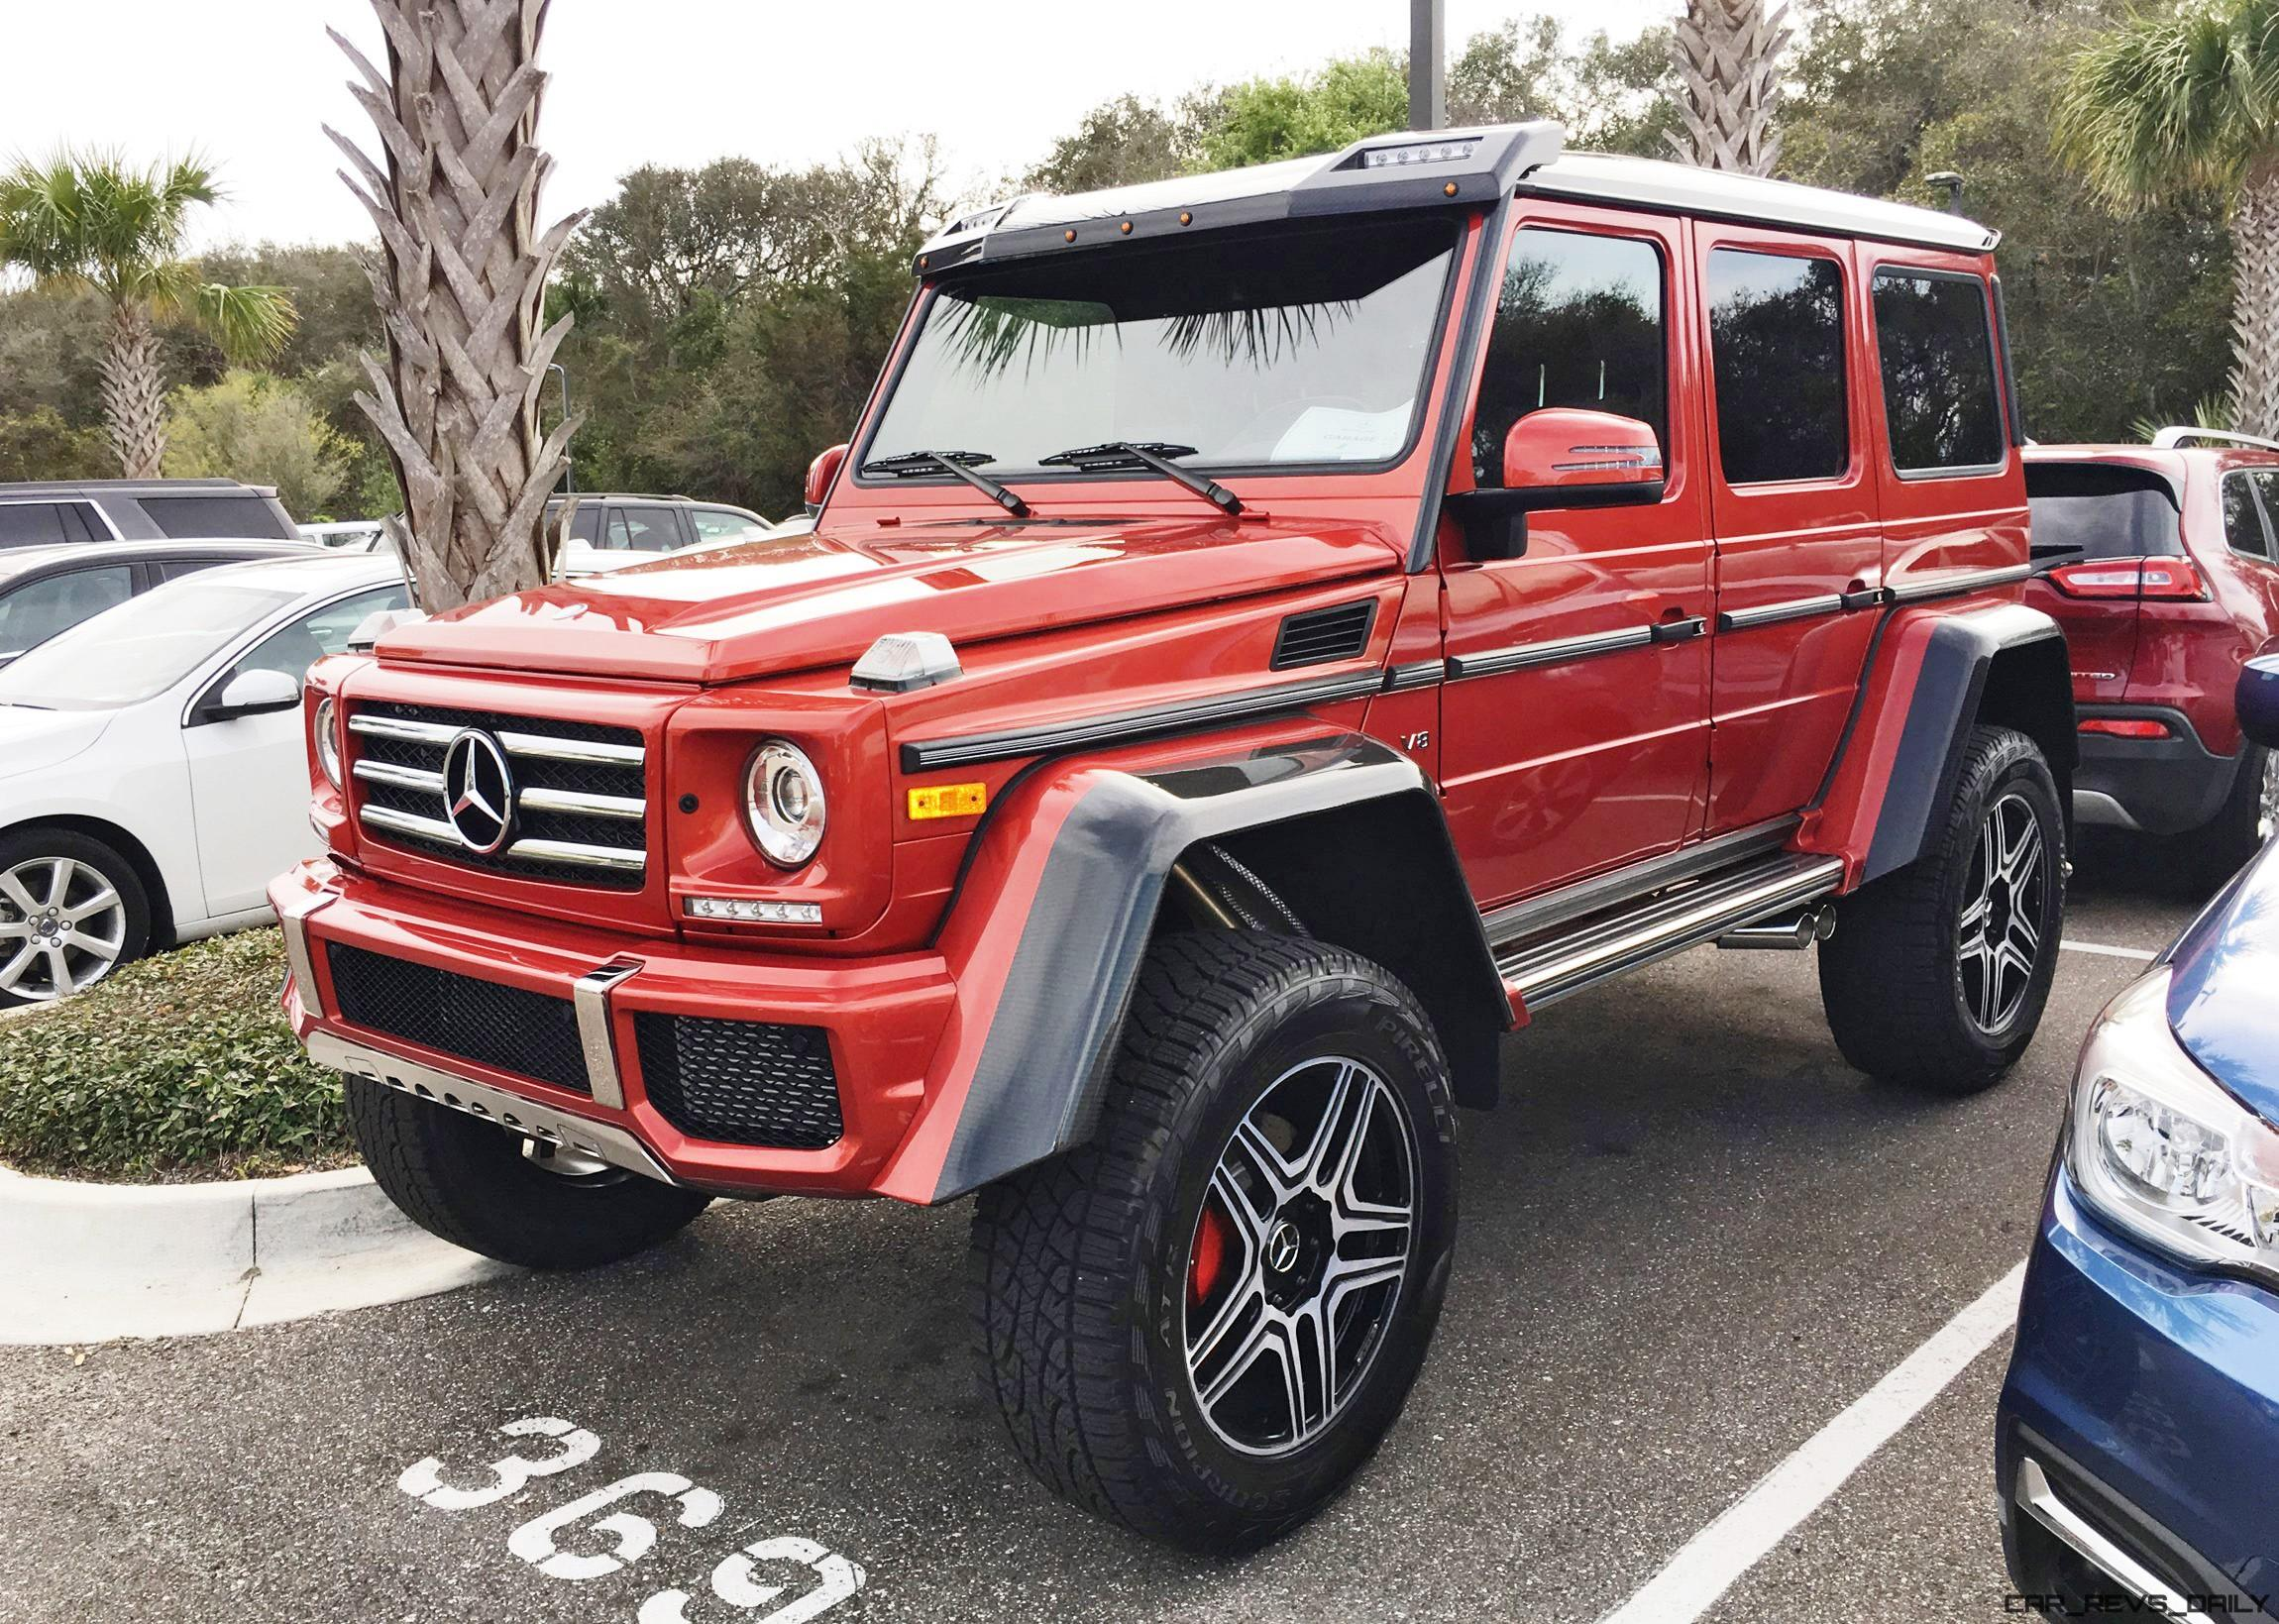 2017 mercedes benz g550 4x4 at amelia island concours 45 for Mercedes benz g550 price